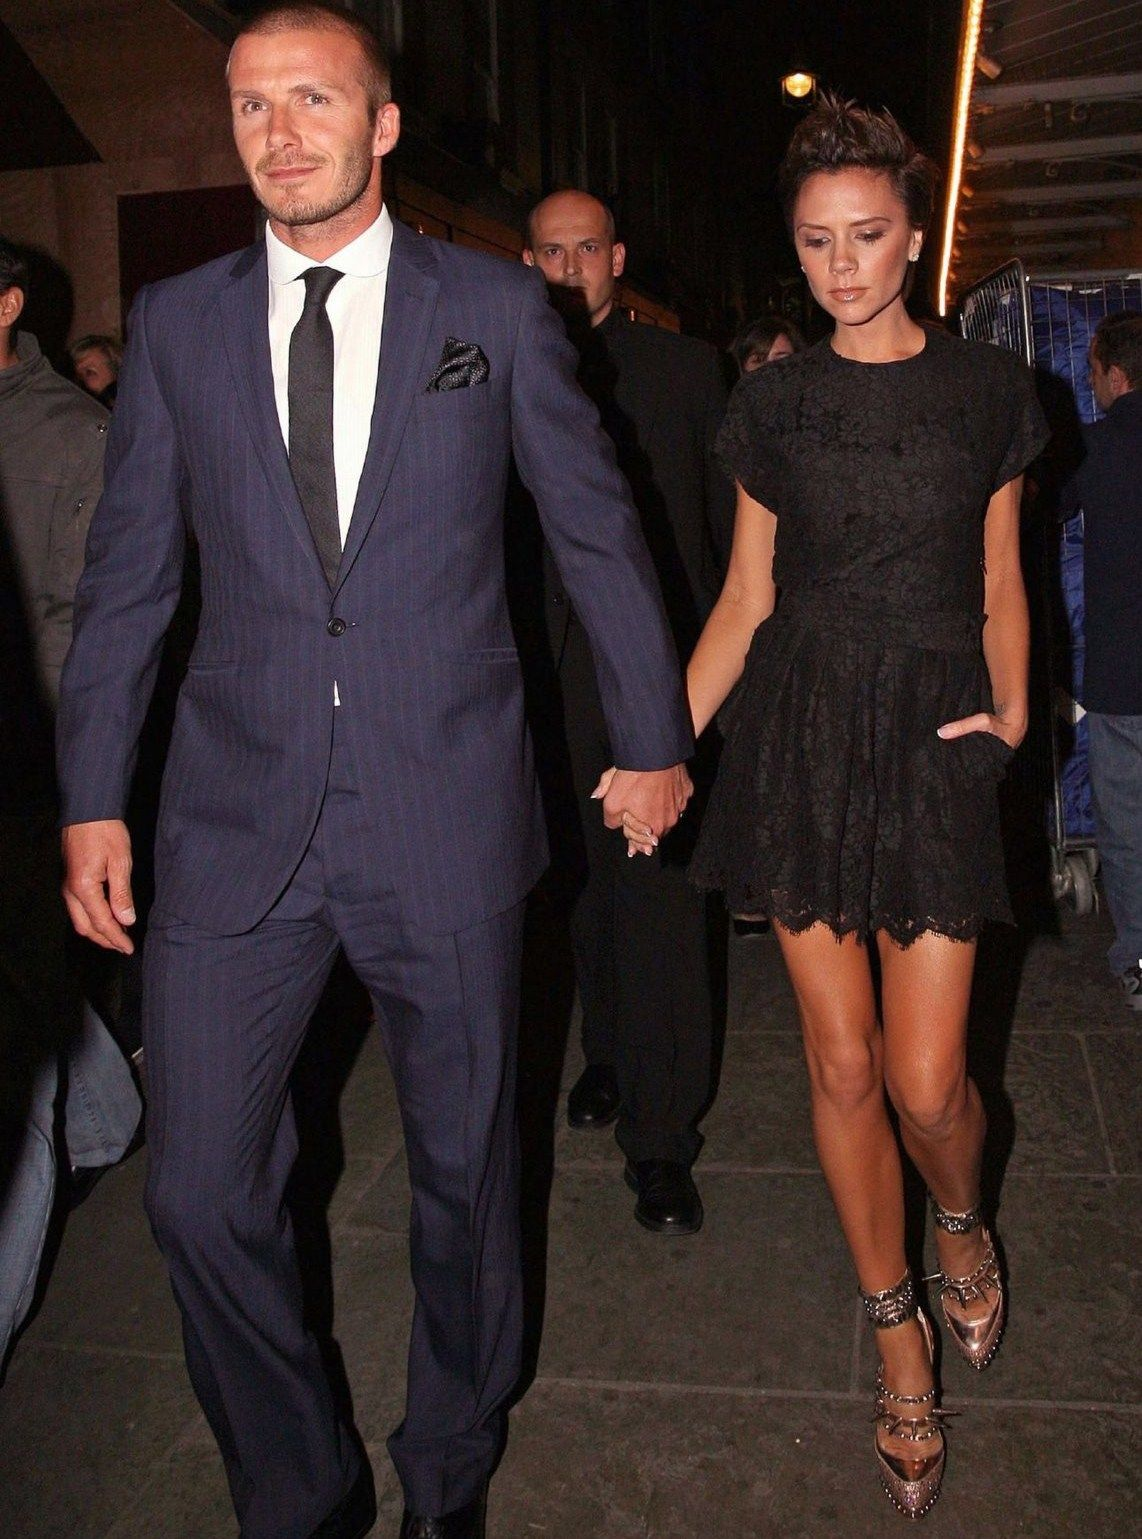 Black dress navy suit - For This Picture Victoria Beckham David Wearing An Elegant Navy Suit